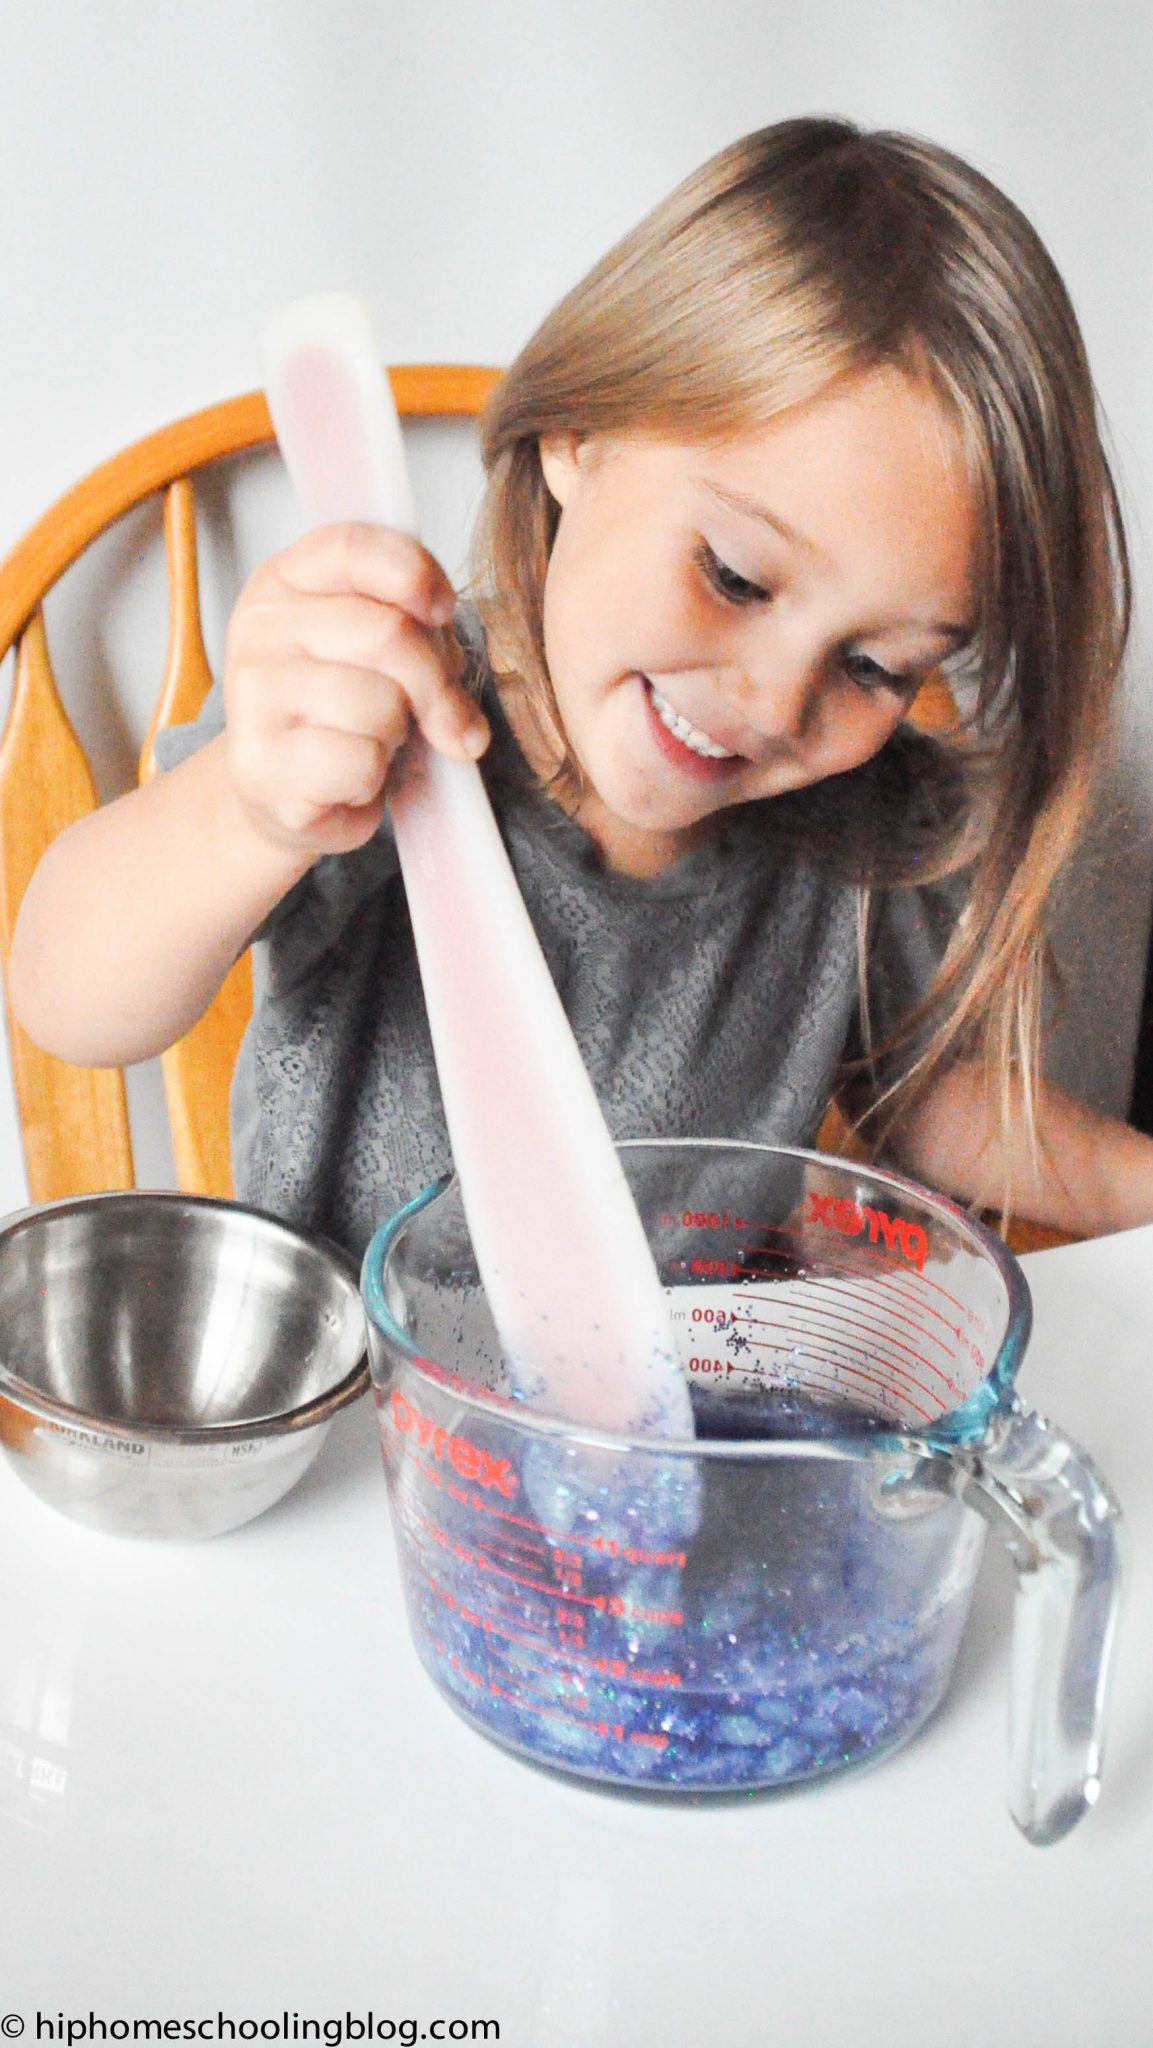 How to make silly putty step 4: mix in your borax/water ratio